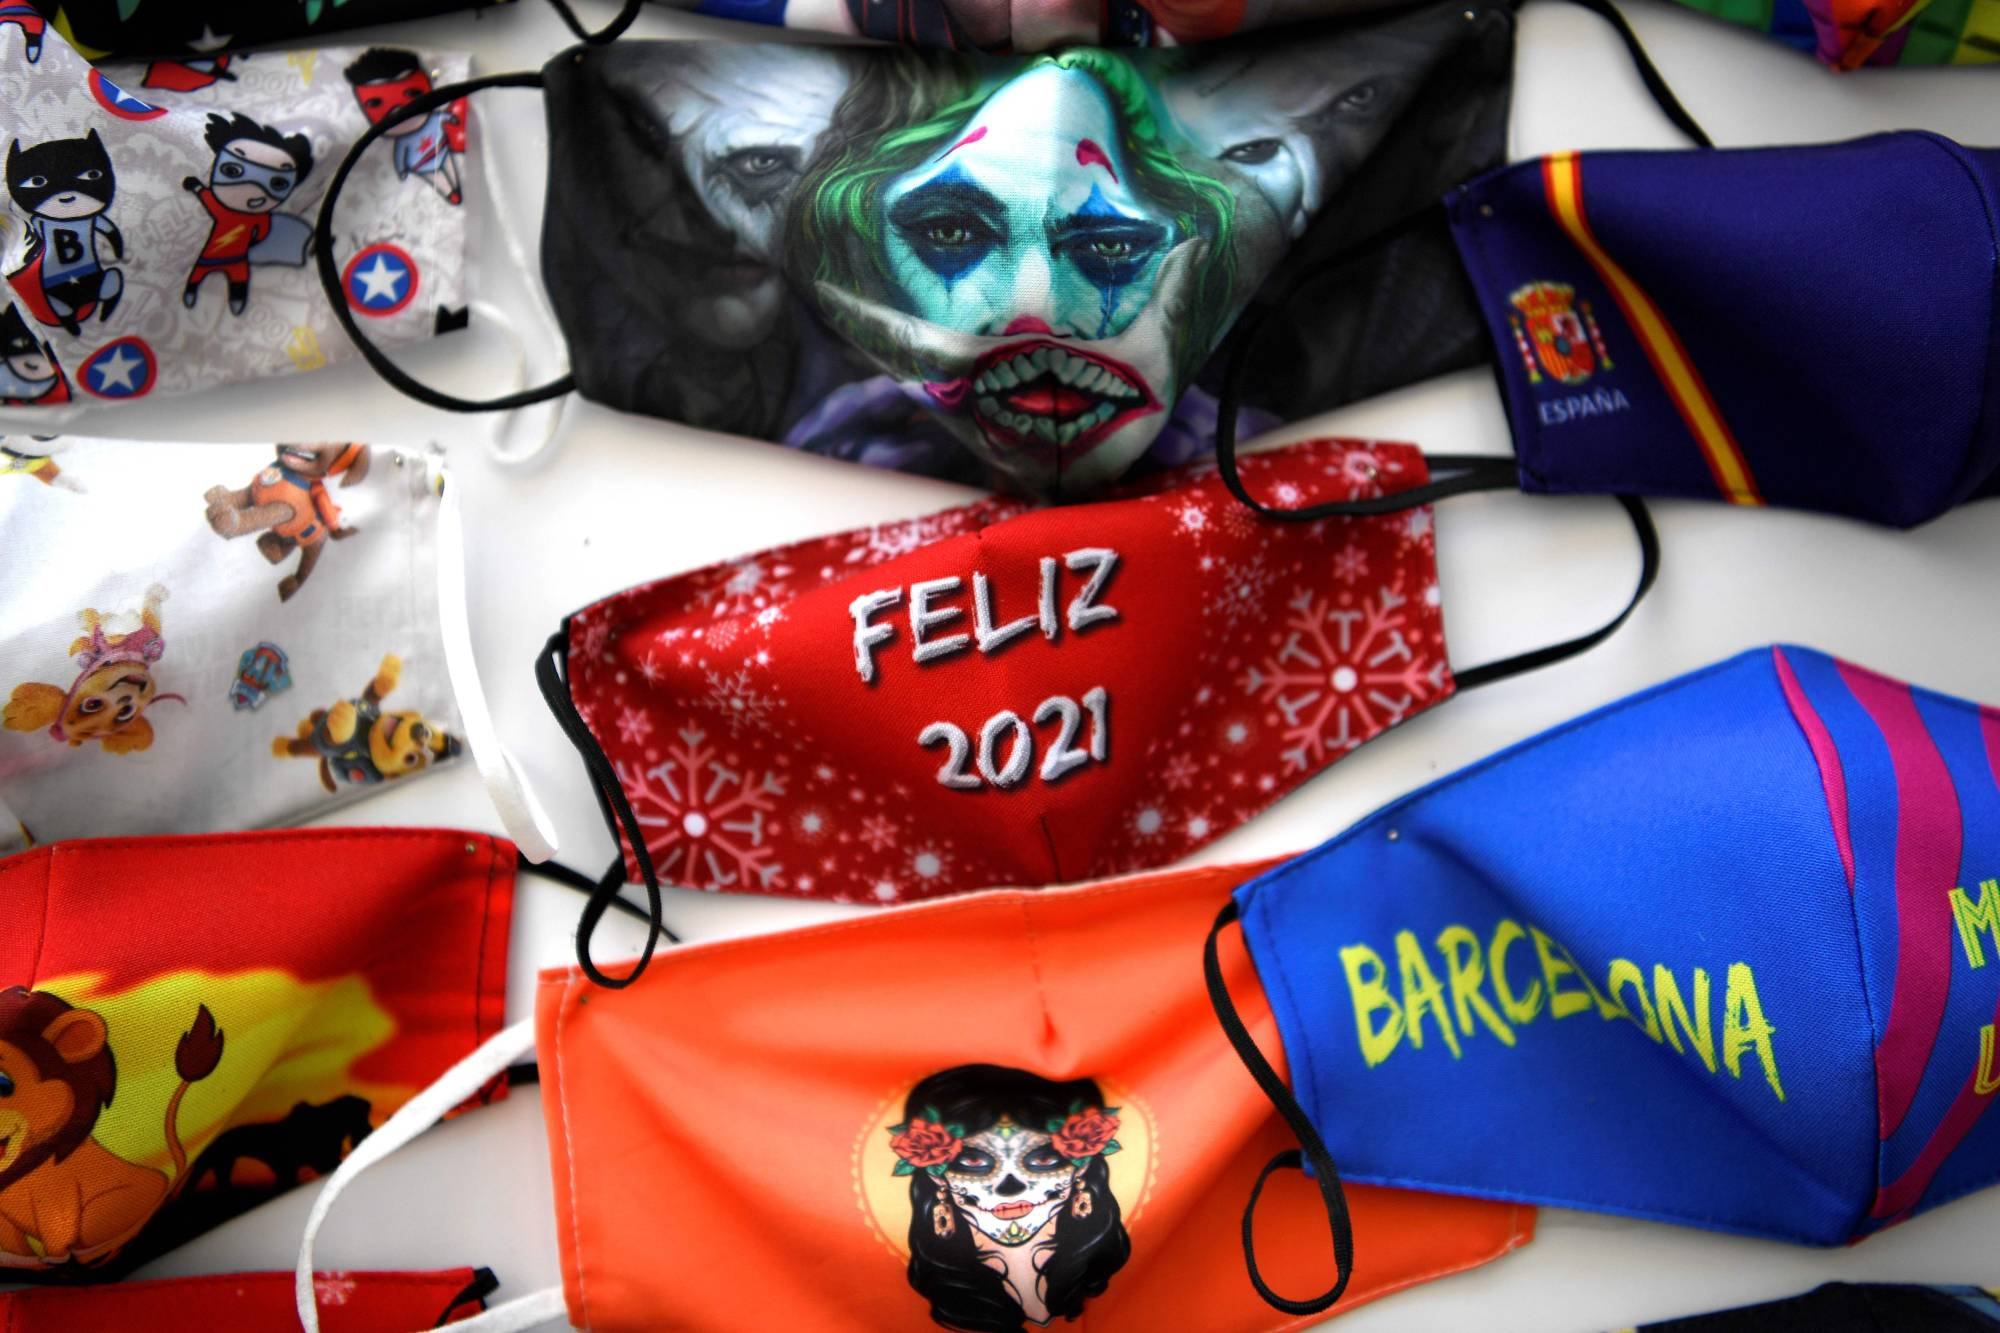 Fabric face masks are displayed for sale at a store in Madrid on Friday. | AFP-JIJI